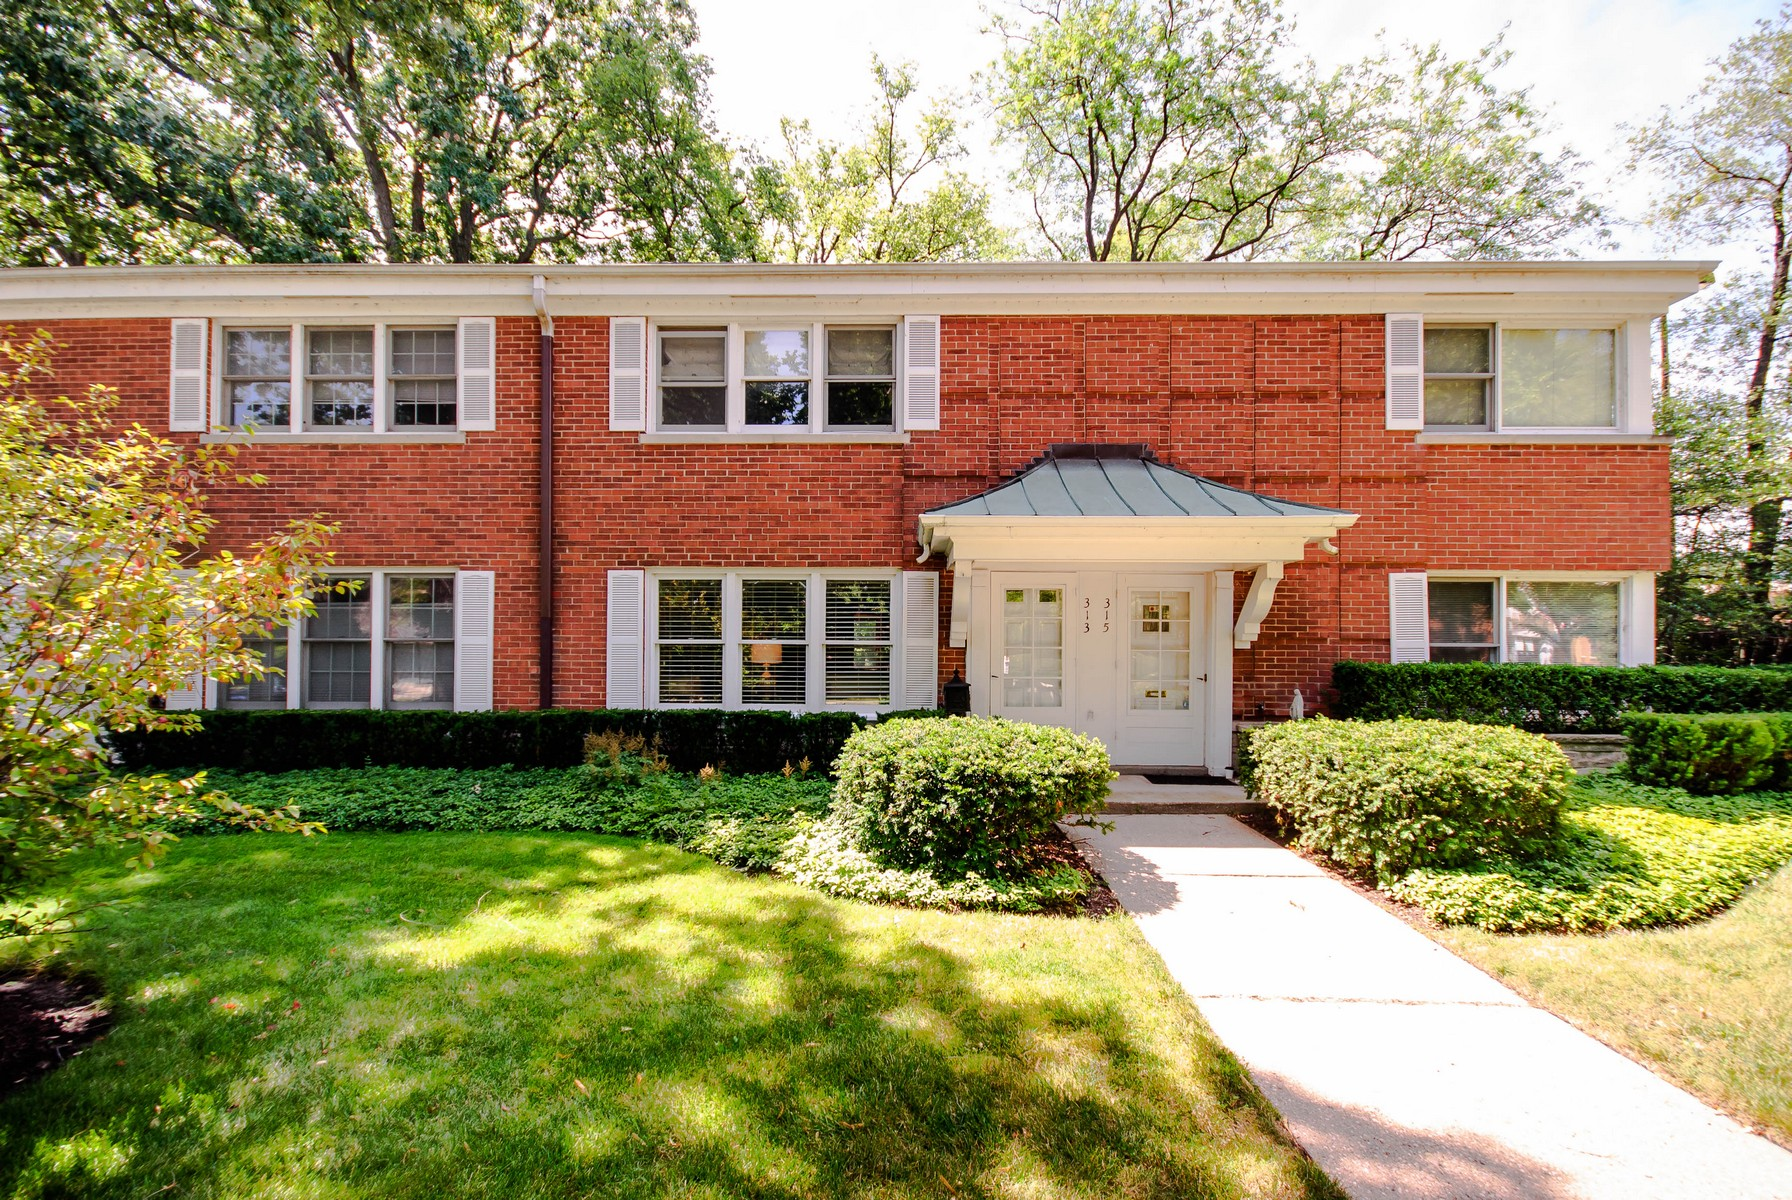 Property For Sale at Rarely Available Brick Townhouse In Wilmette